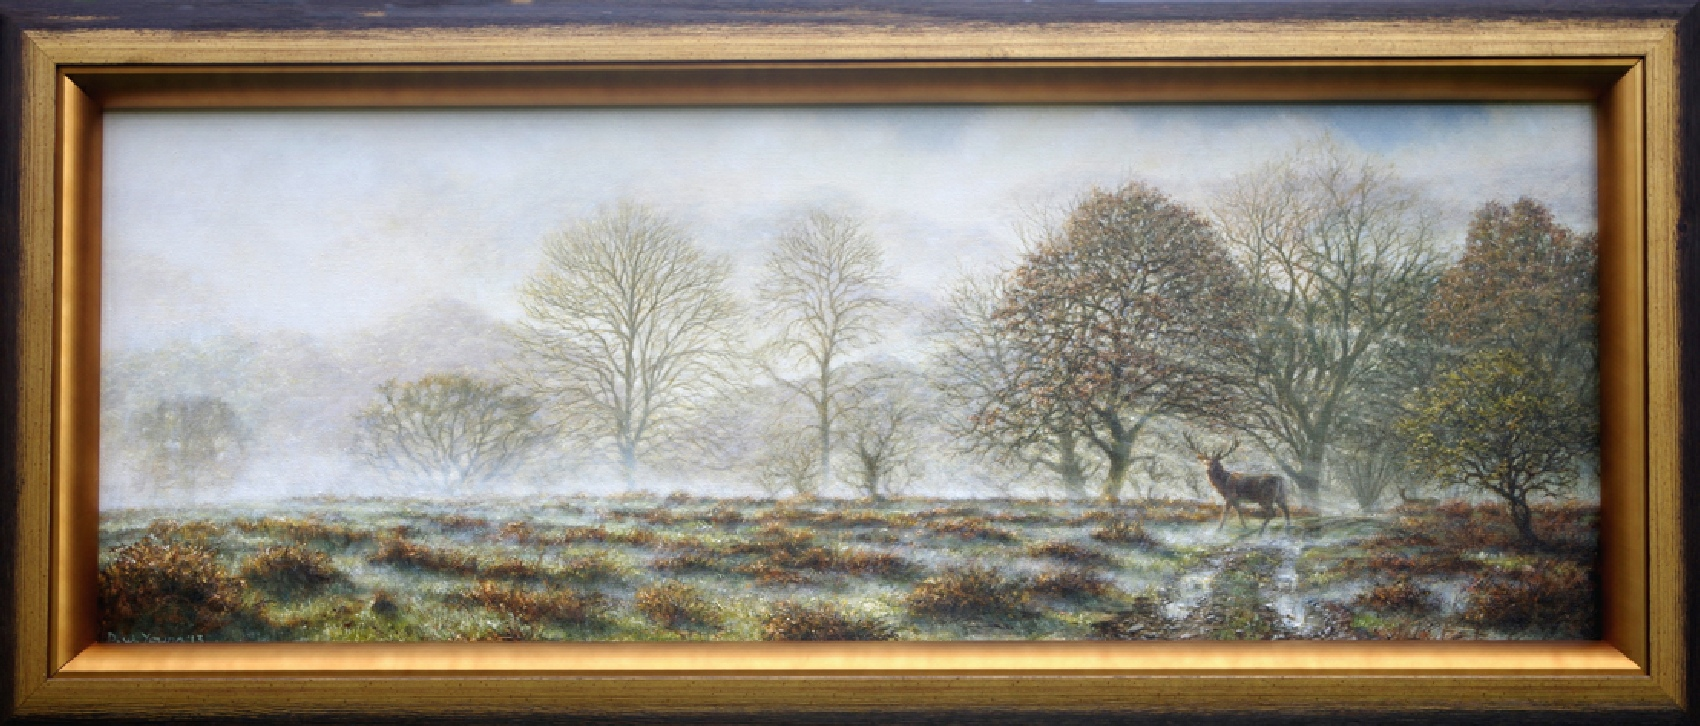 November, Dartmoors Ancient Woodlands painting by David William Young